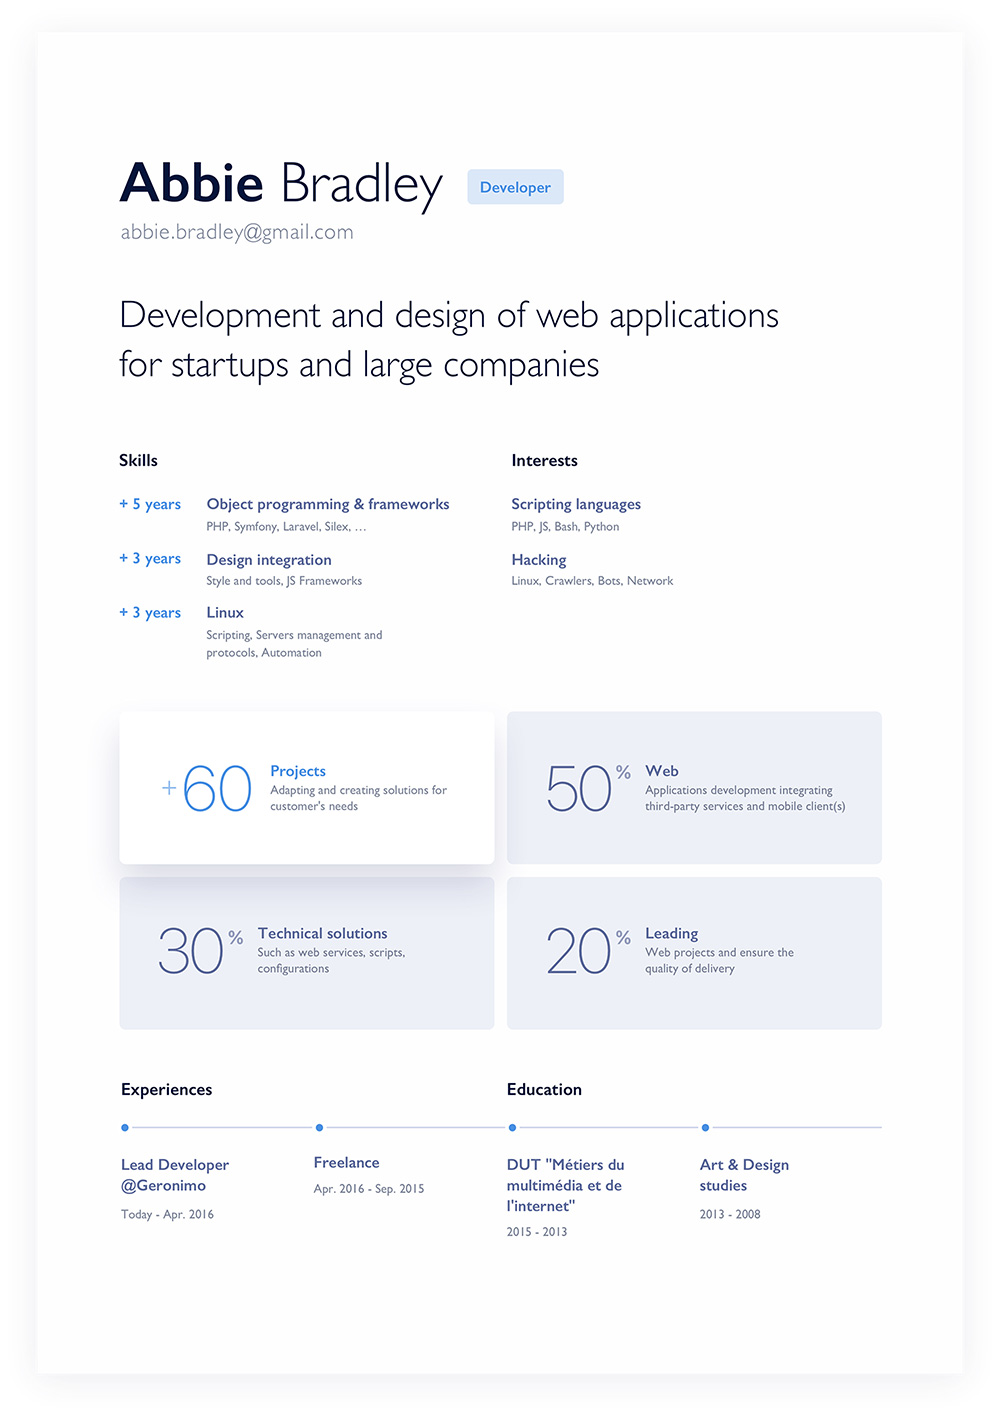 Free-Sketch-&-PSD-Resume-Template-for-Web-&-Software-Developer-2